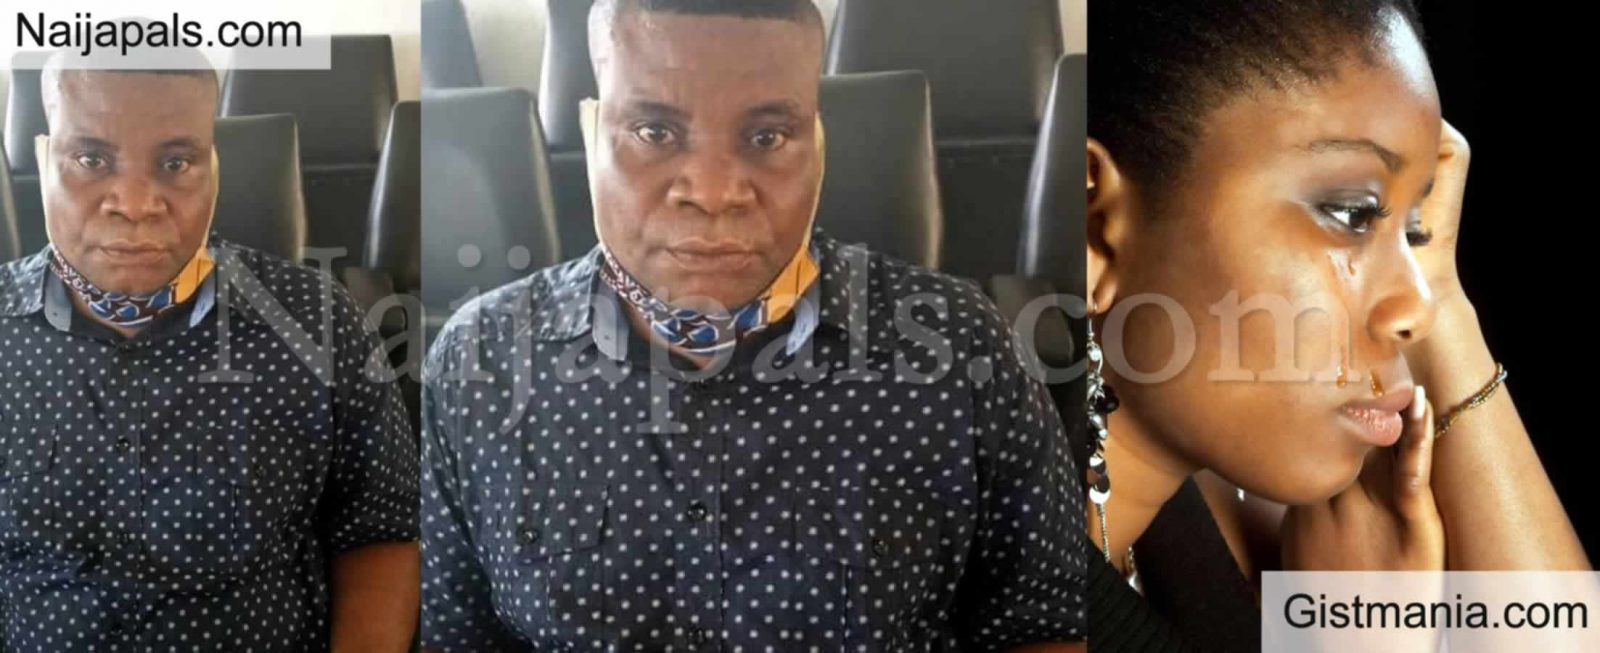 Isi-Ewu! 47-Year-Old Man, Emmanuel Udo Sentenced To Life For molesting 14-Year-Old Stepdaughter